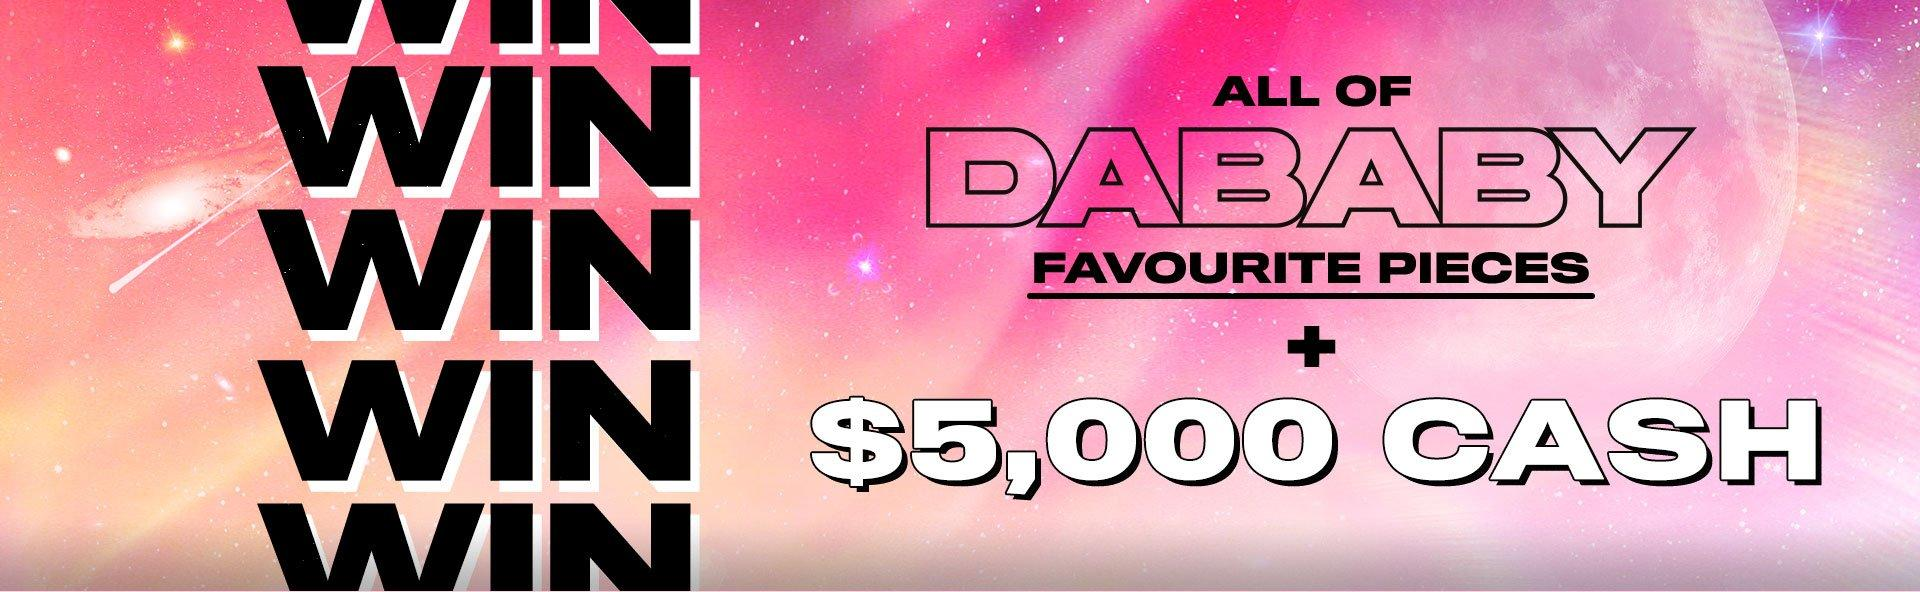 Win all of DaBaby favourite pieces plus $5000 cash